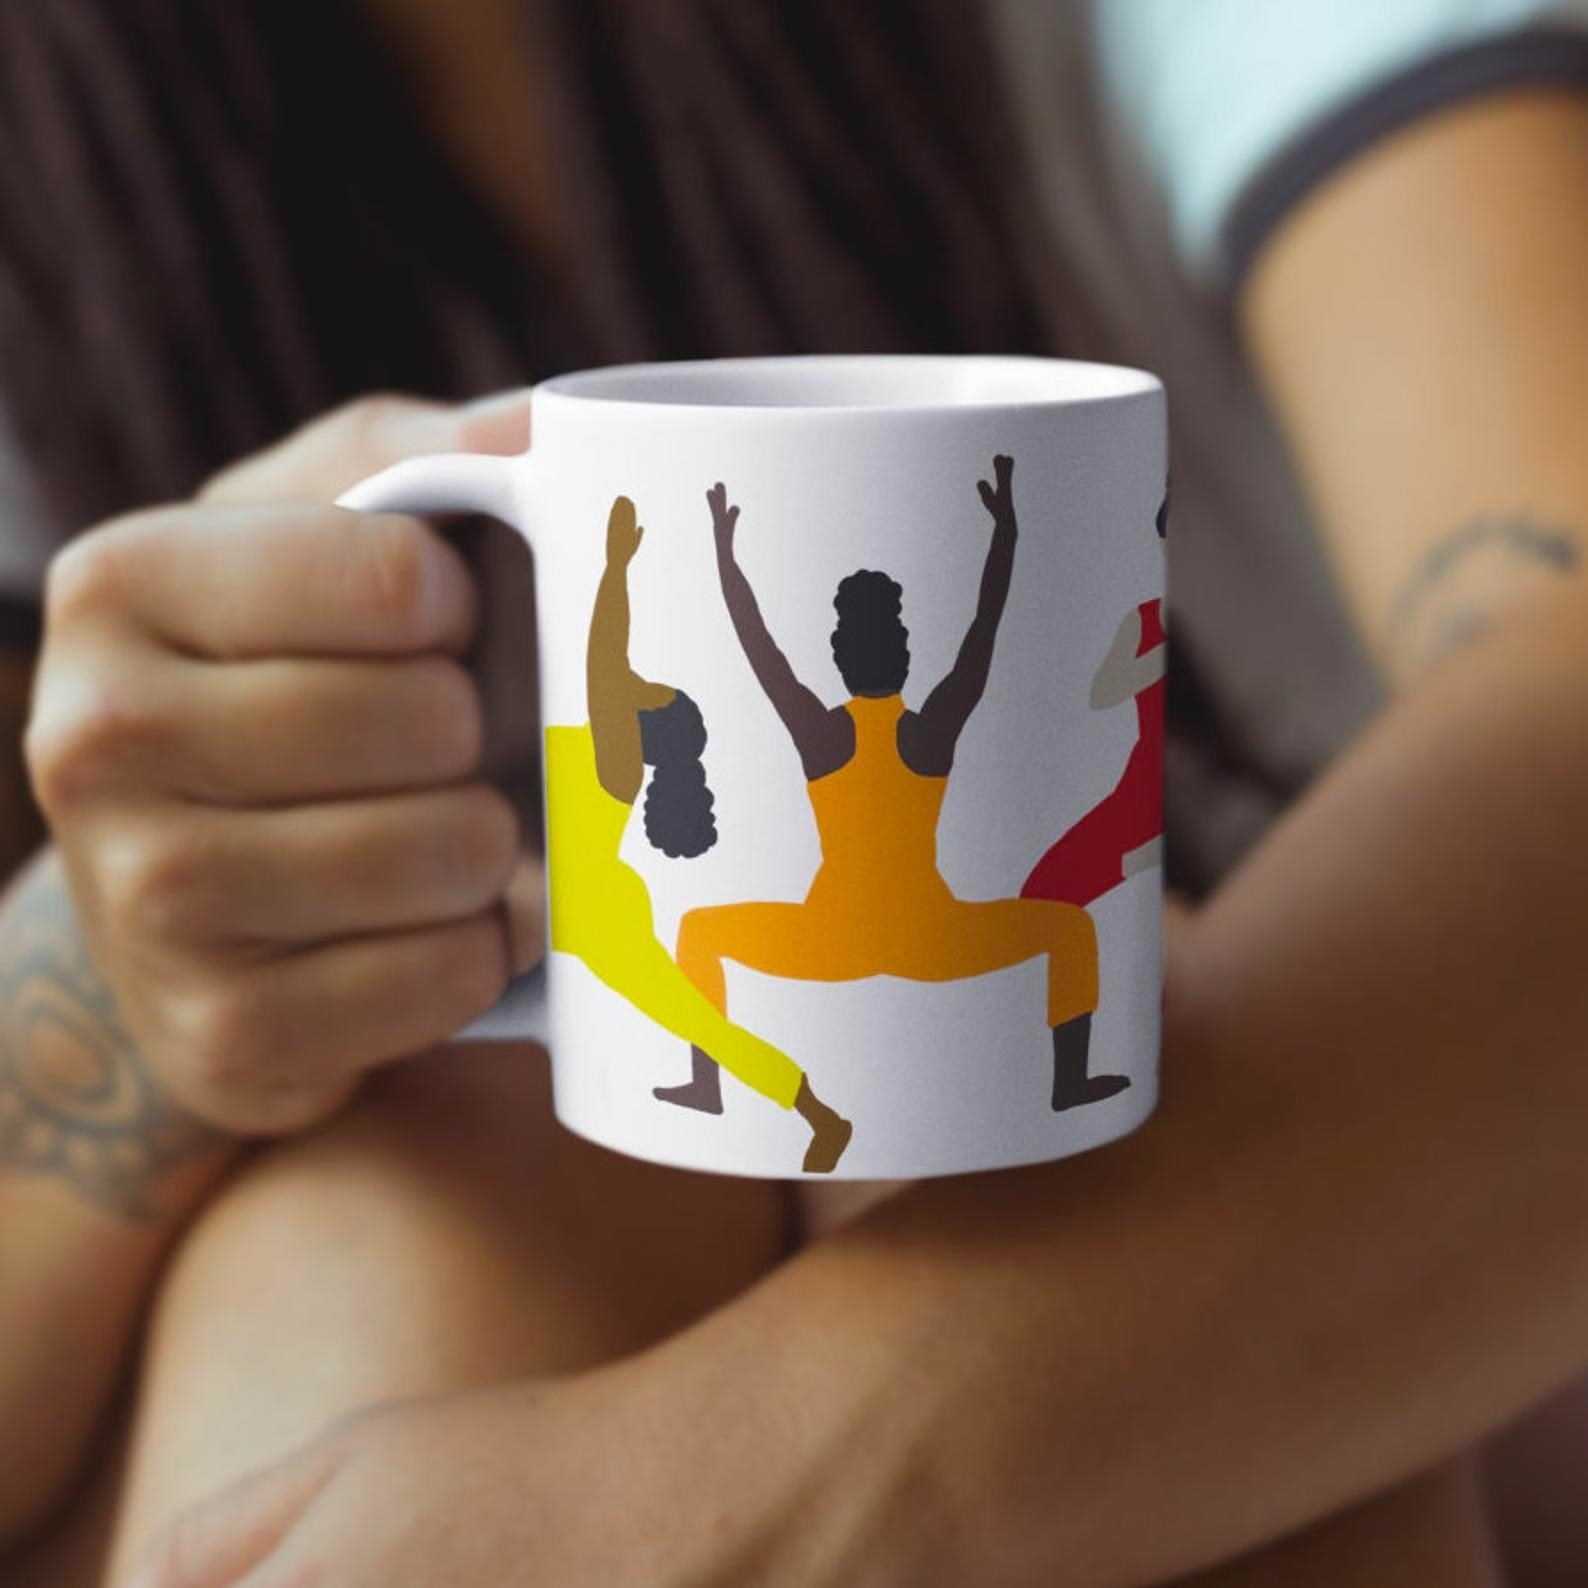 model's hand holding a mug with animated brown-skinned people in bright workout clothes doing yoga poses